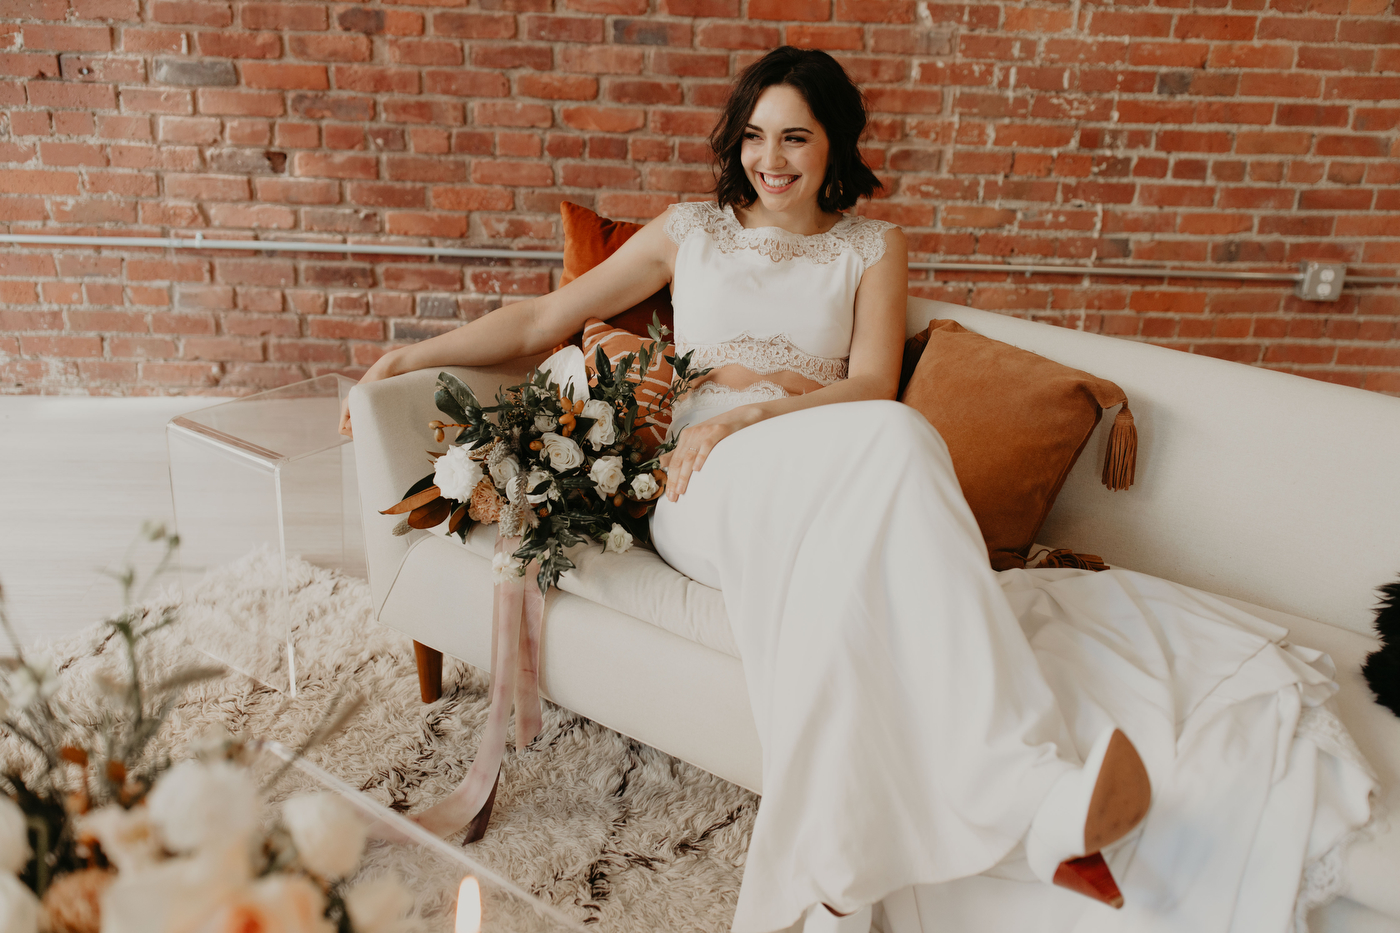 Modern Autumn Styled Shoot On Apple Brides